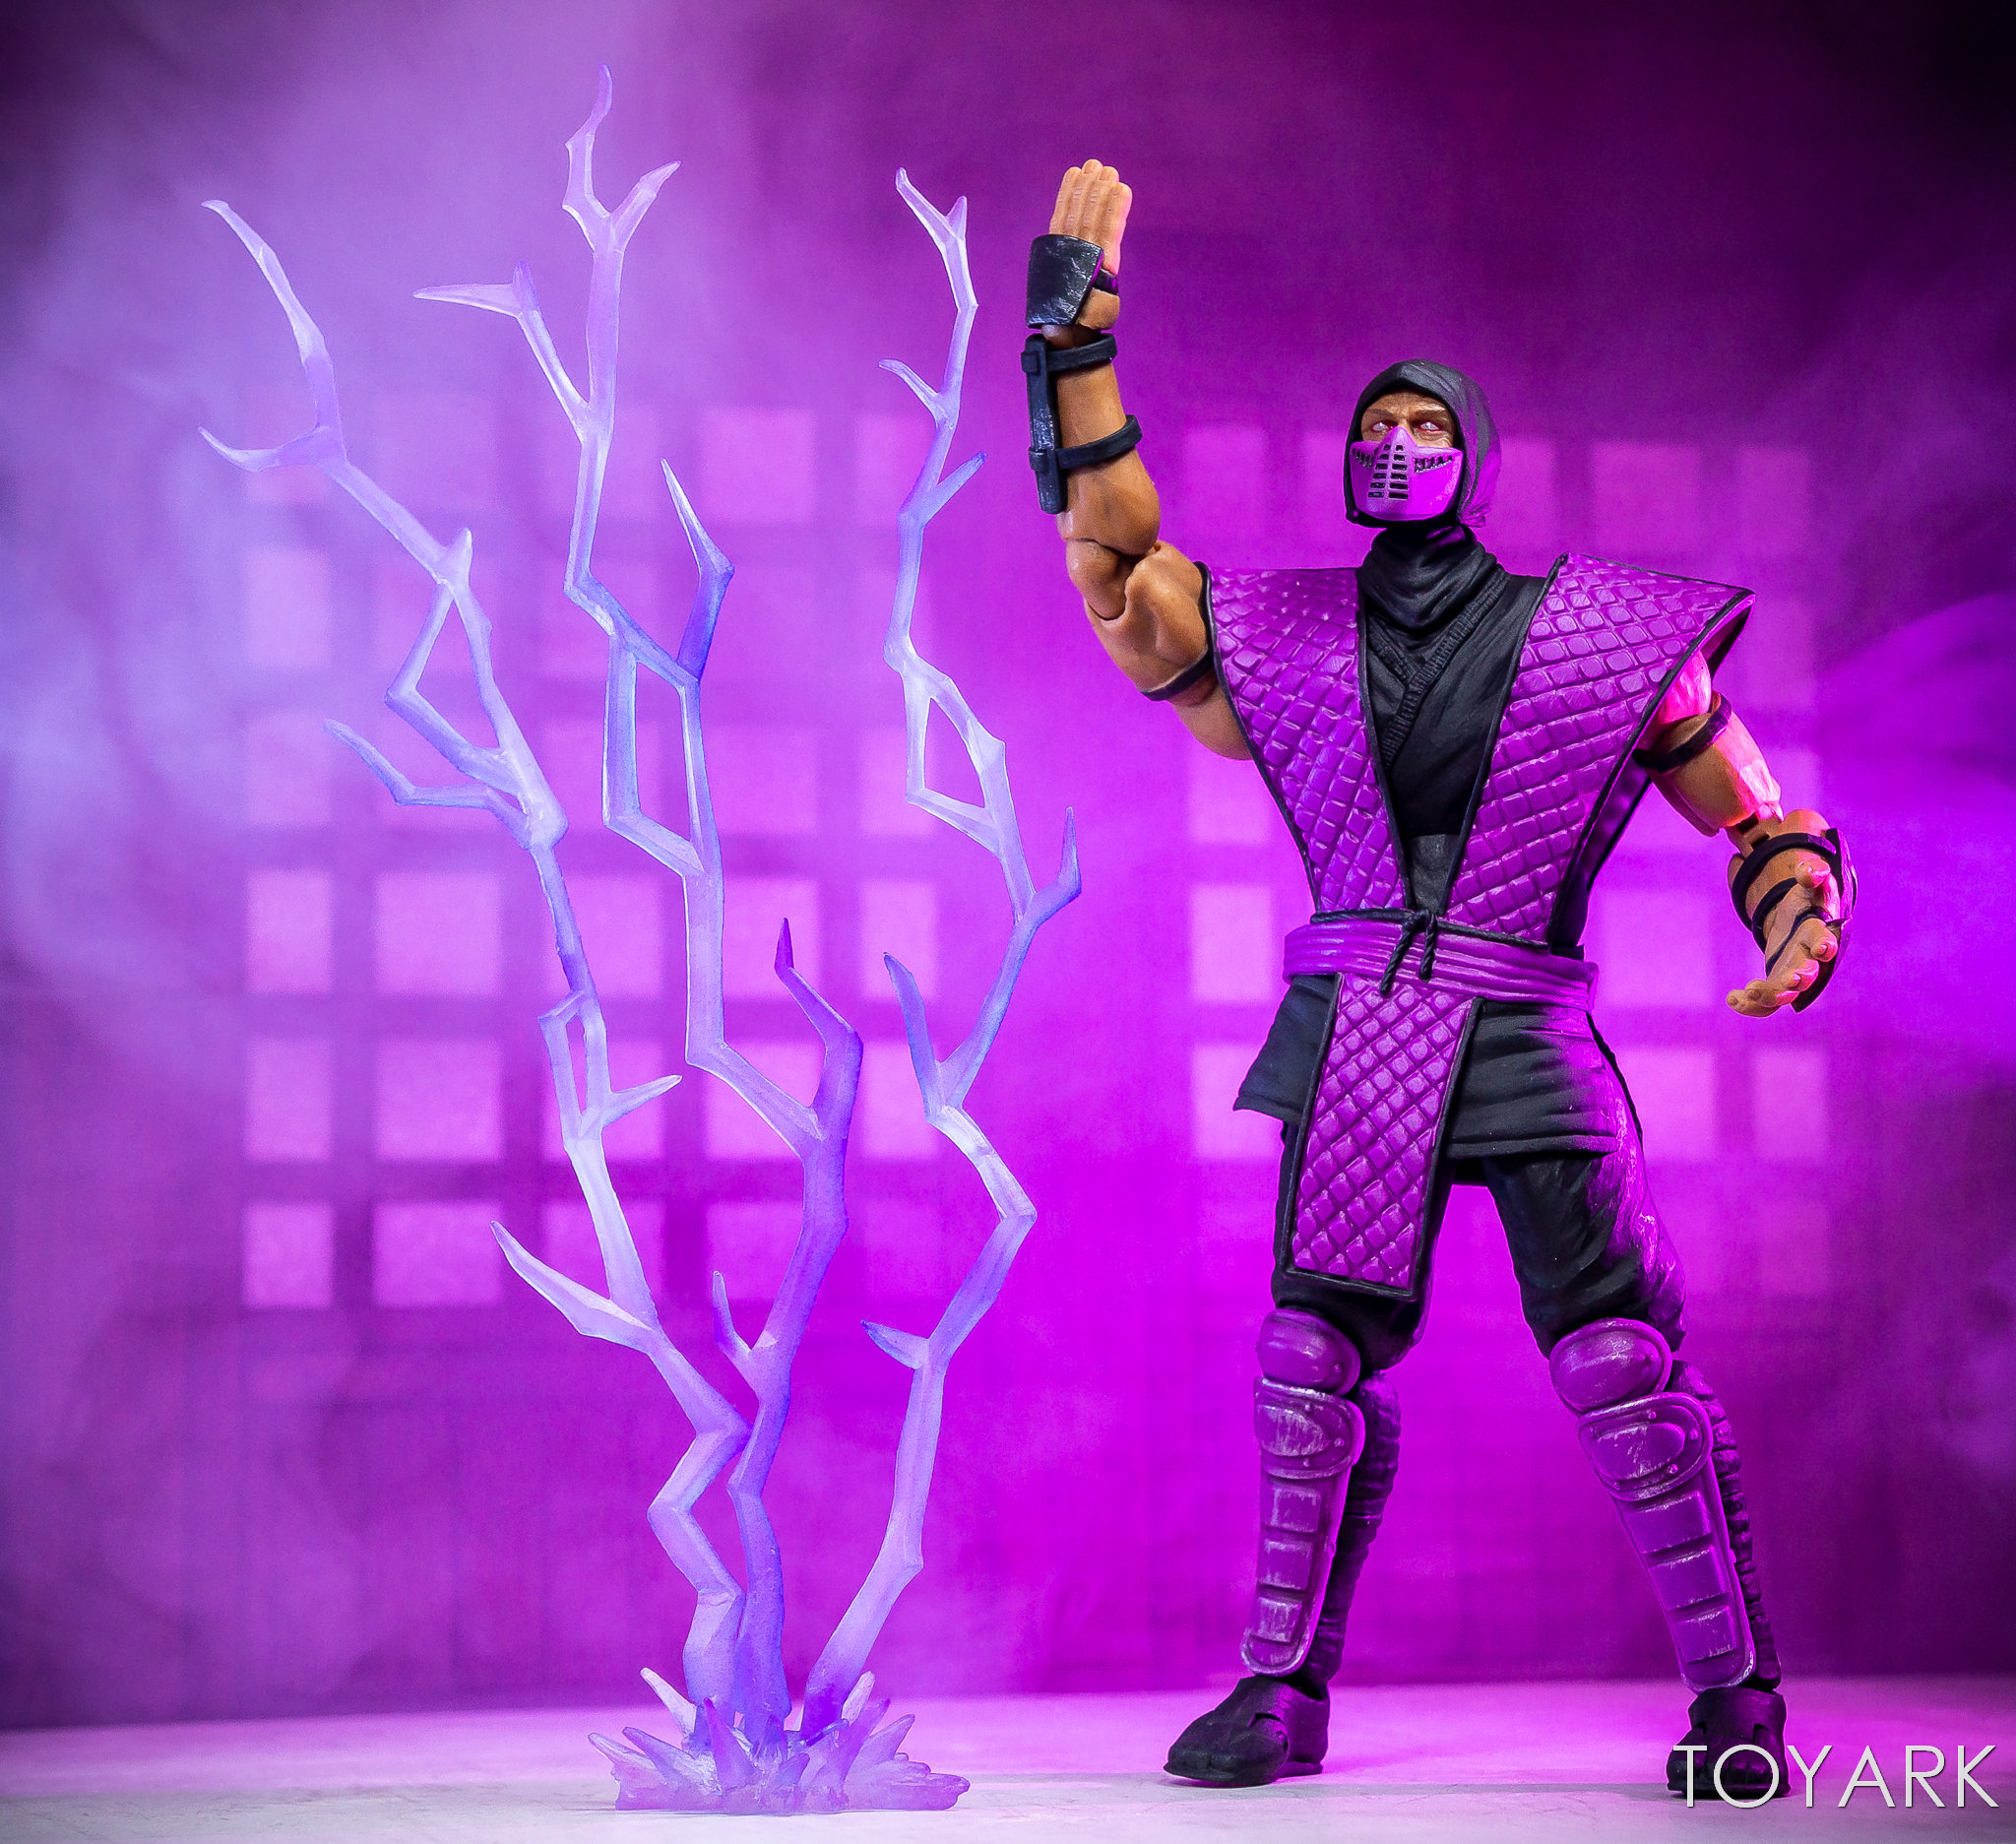 https://news.toyark.com/wp-content/uploads/sites/4/2018/12/Storm-NYCC-18-Mortal-Kombat-Figures-022.jpg